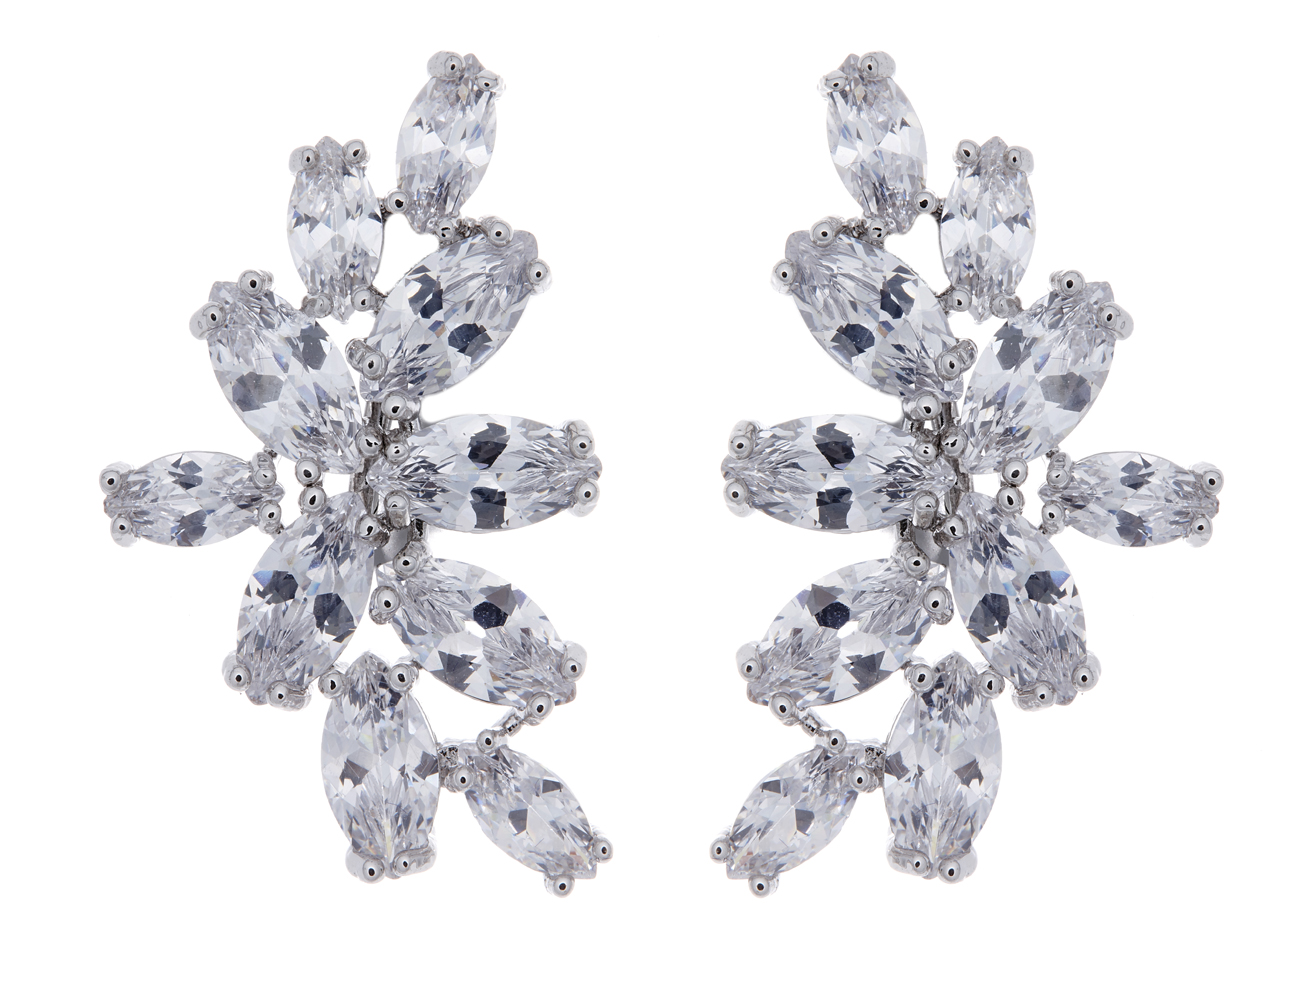 Clip On Earrings - Marla - silver luxury stud earring with clear cubic zirconia stones